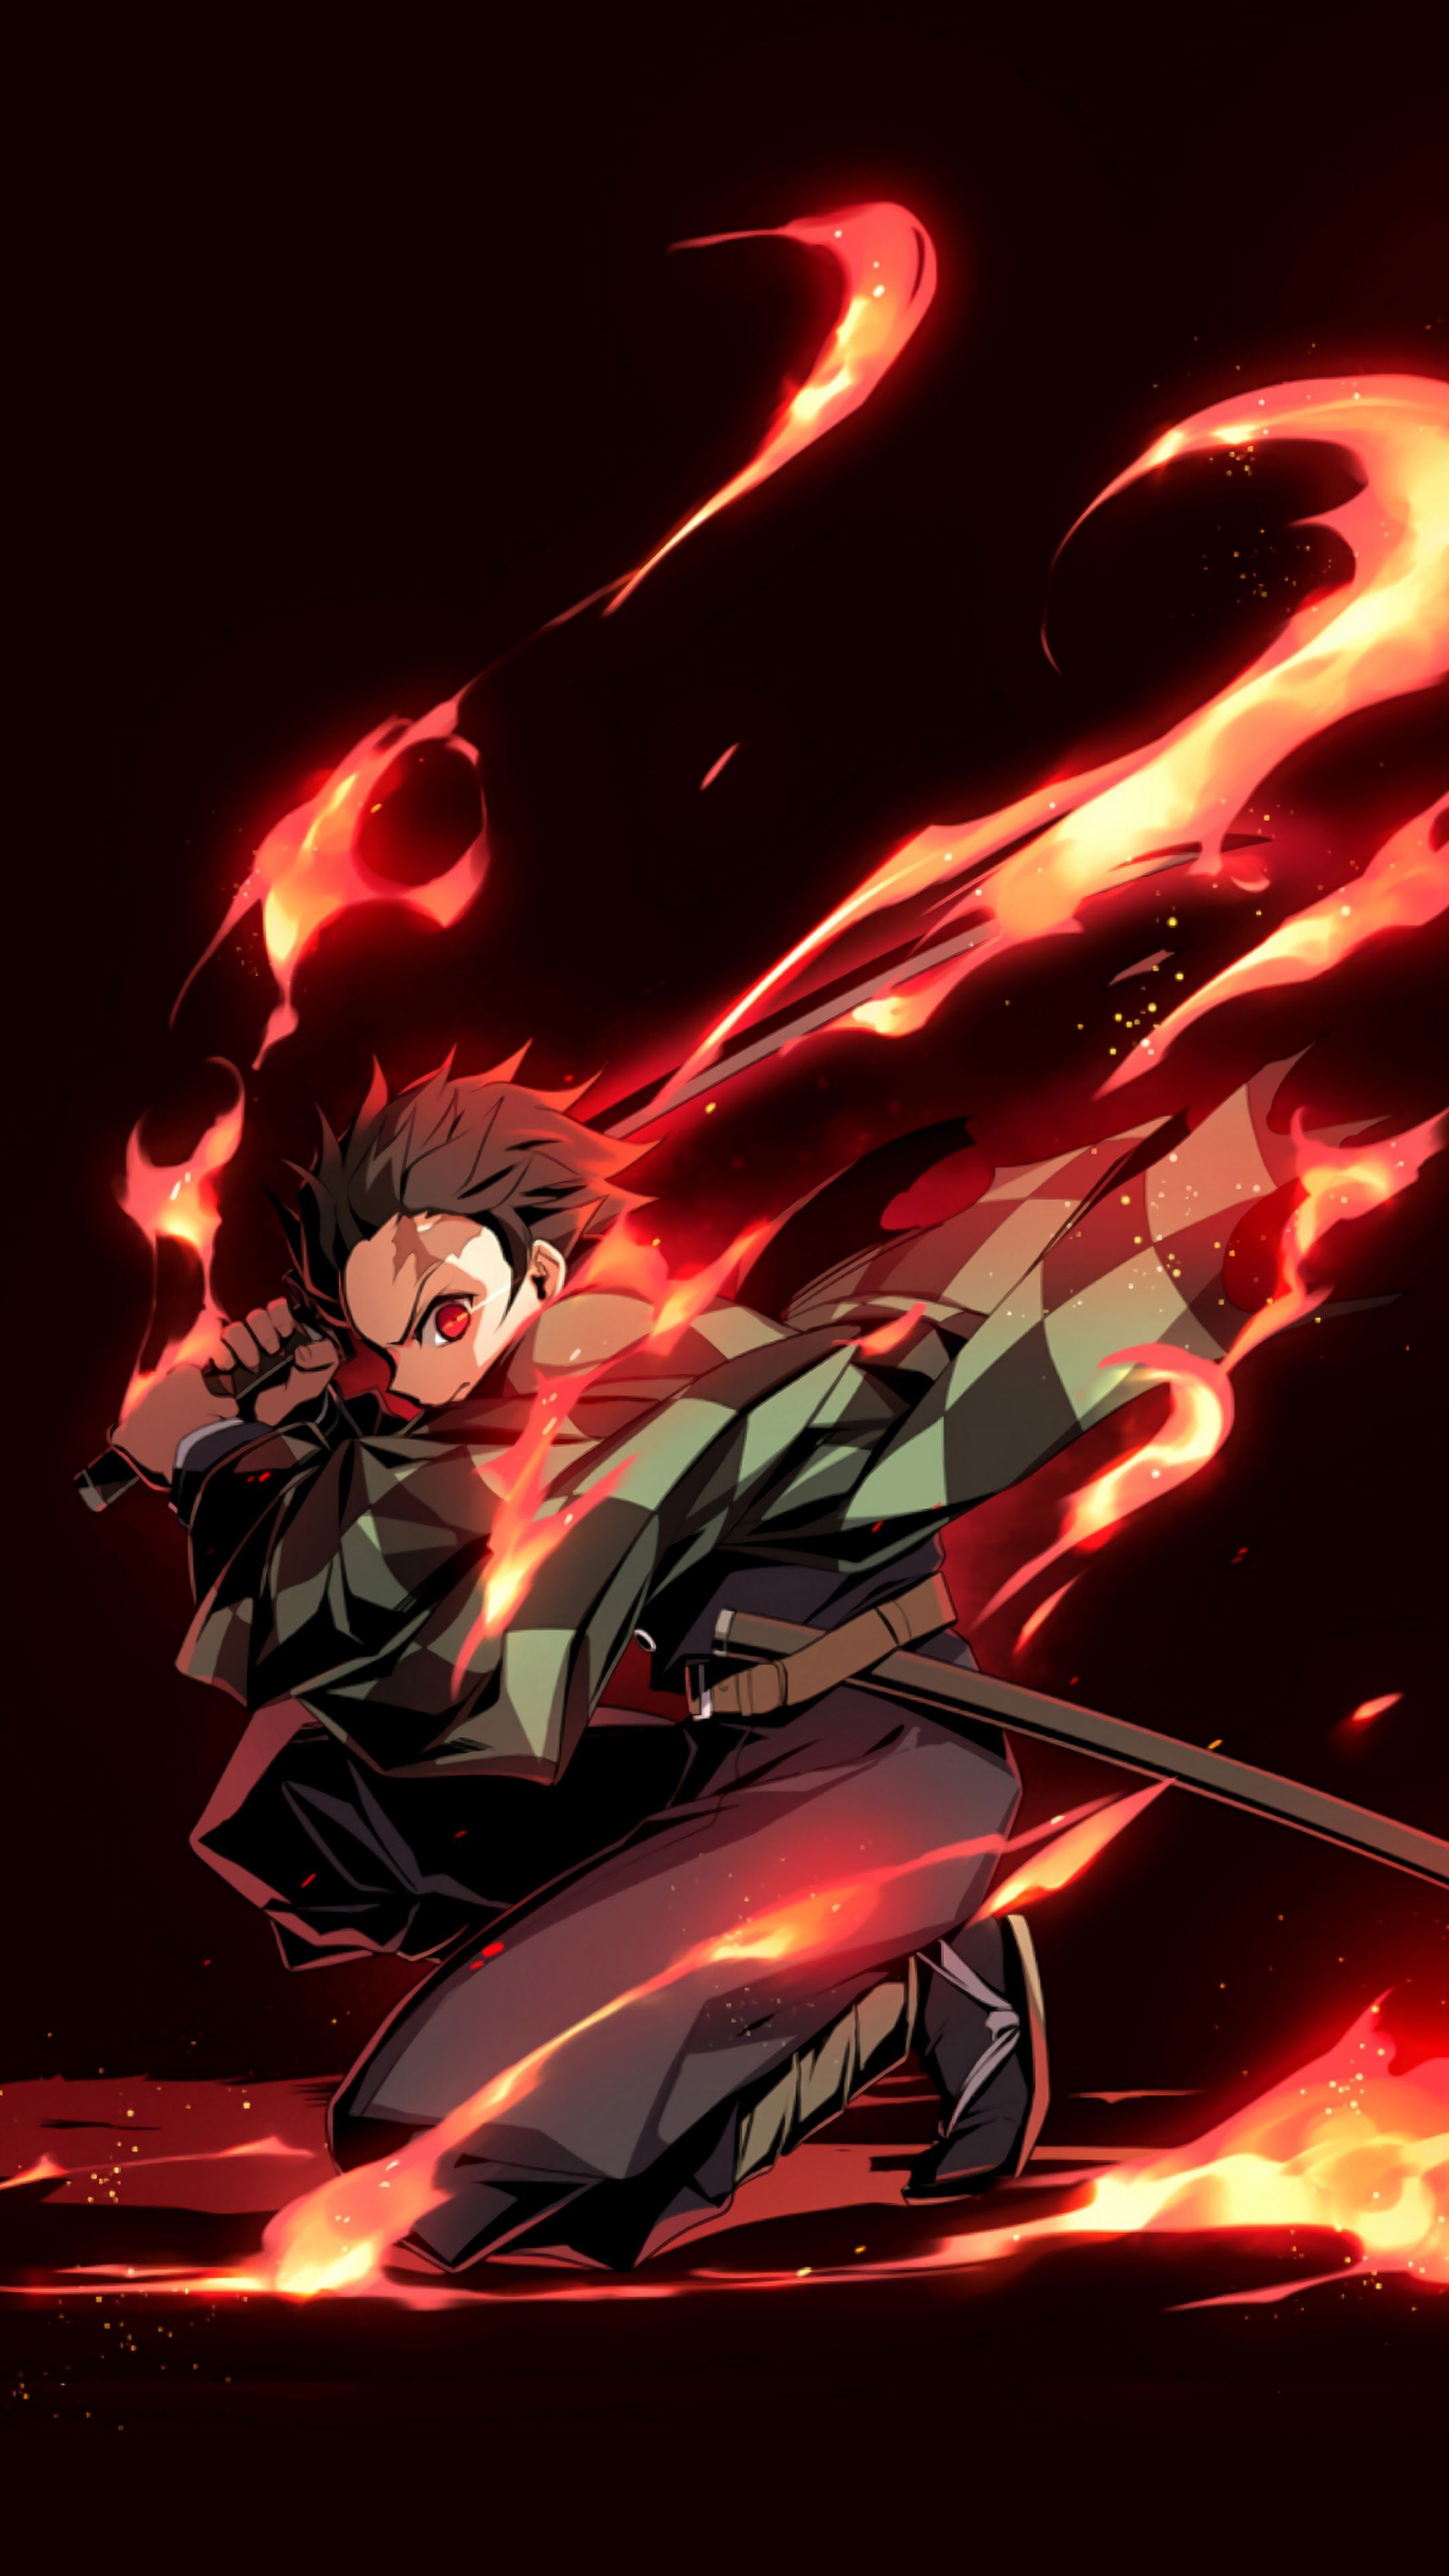 Anime HD Android Aesthetic Demon Slayer Wallpapers ...